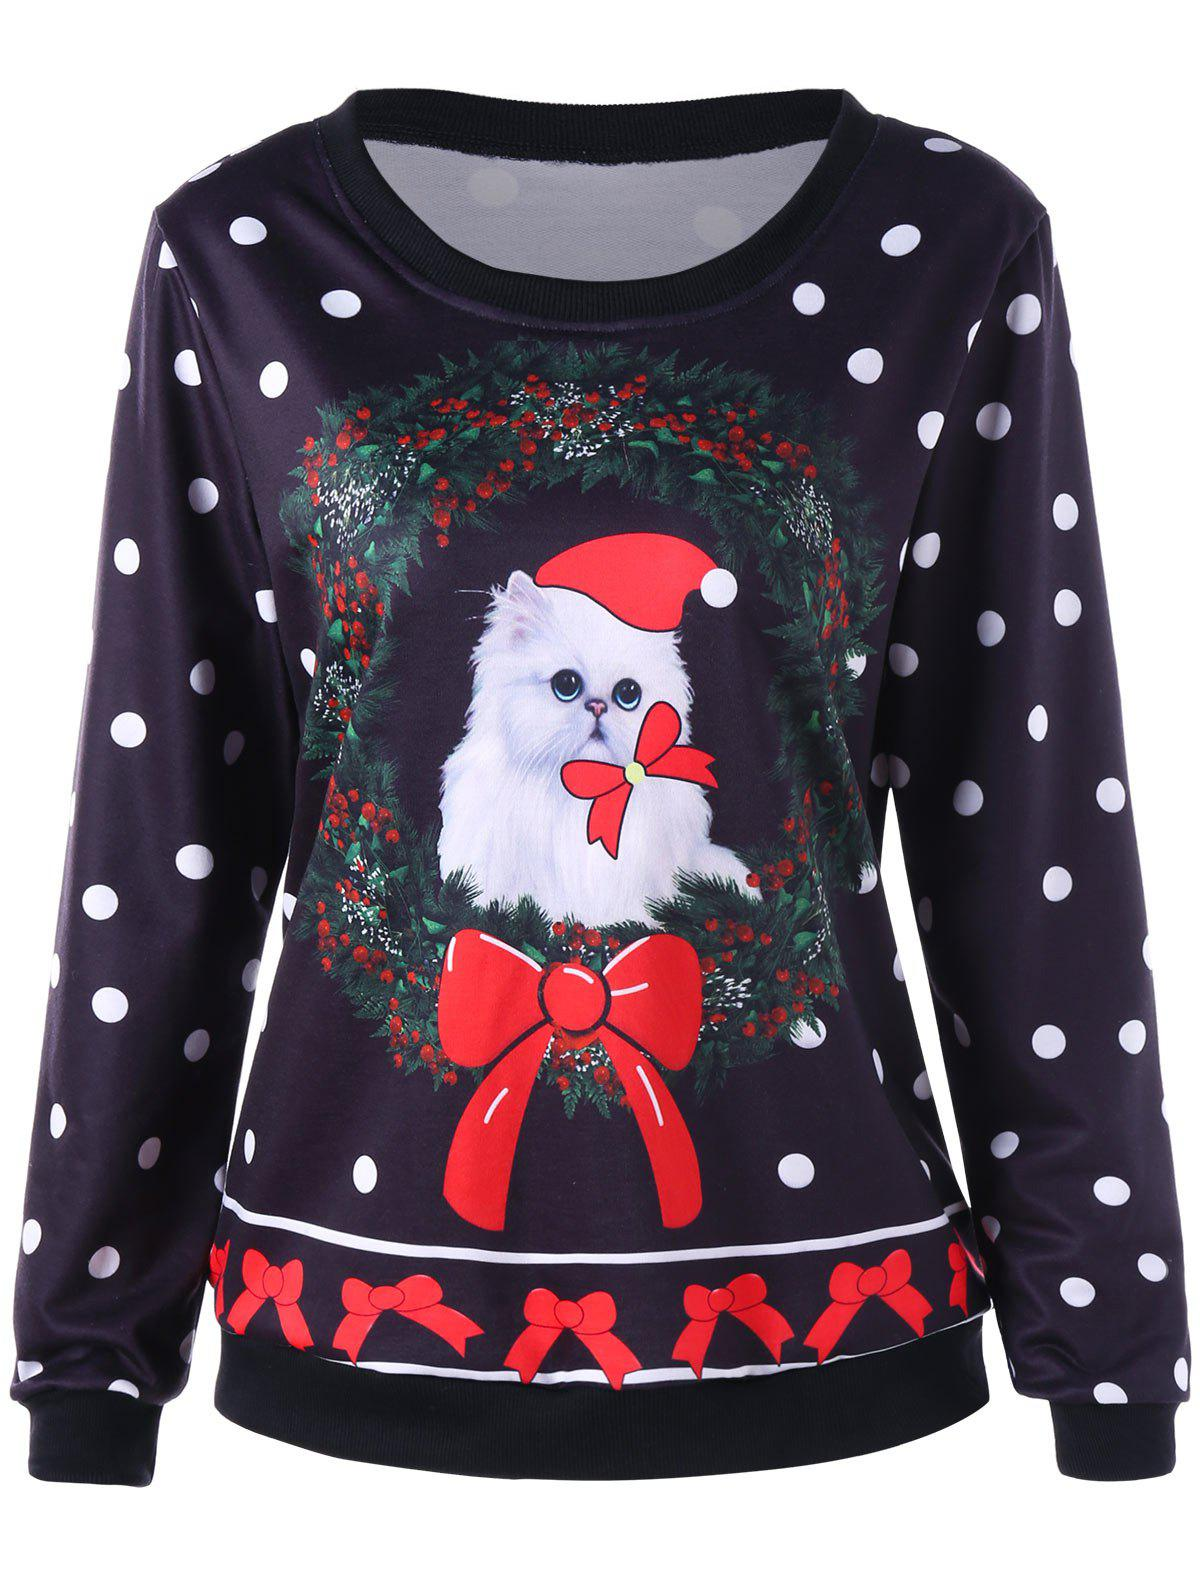 Christmas Cat and Polka Dot SweatshirtWOMEN<br><br>Size: M; Color: BLACK; Material: Polyester; Shirt Length: Regular; Sleeve Length: Full; Style: Casual; Pattern Style: Animal,Bowknot,Polka Dot; Season: Fall,Spring; Weight: 0.3630kg; Package Contents: 1 x Sweatshirt;